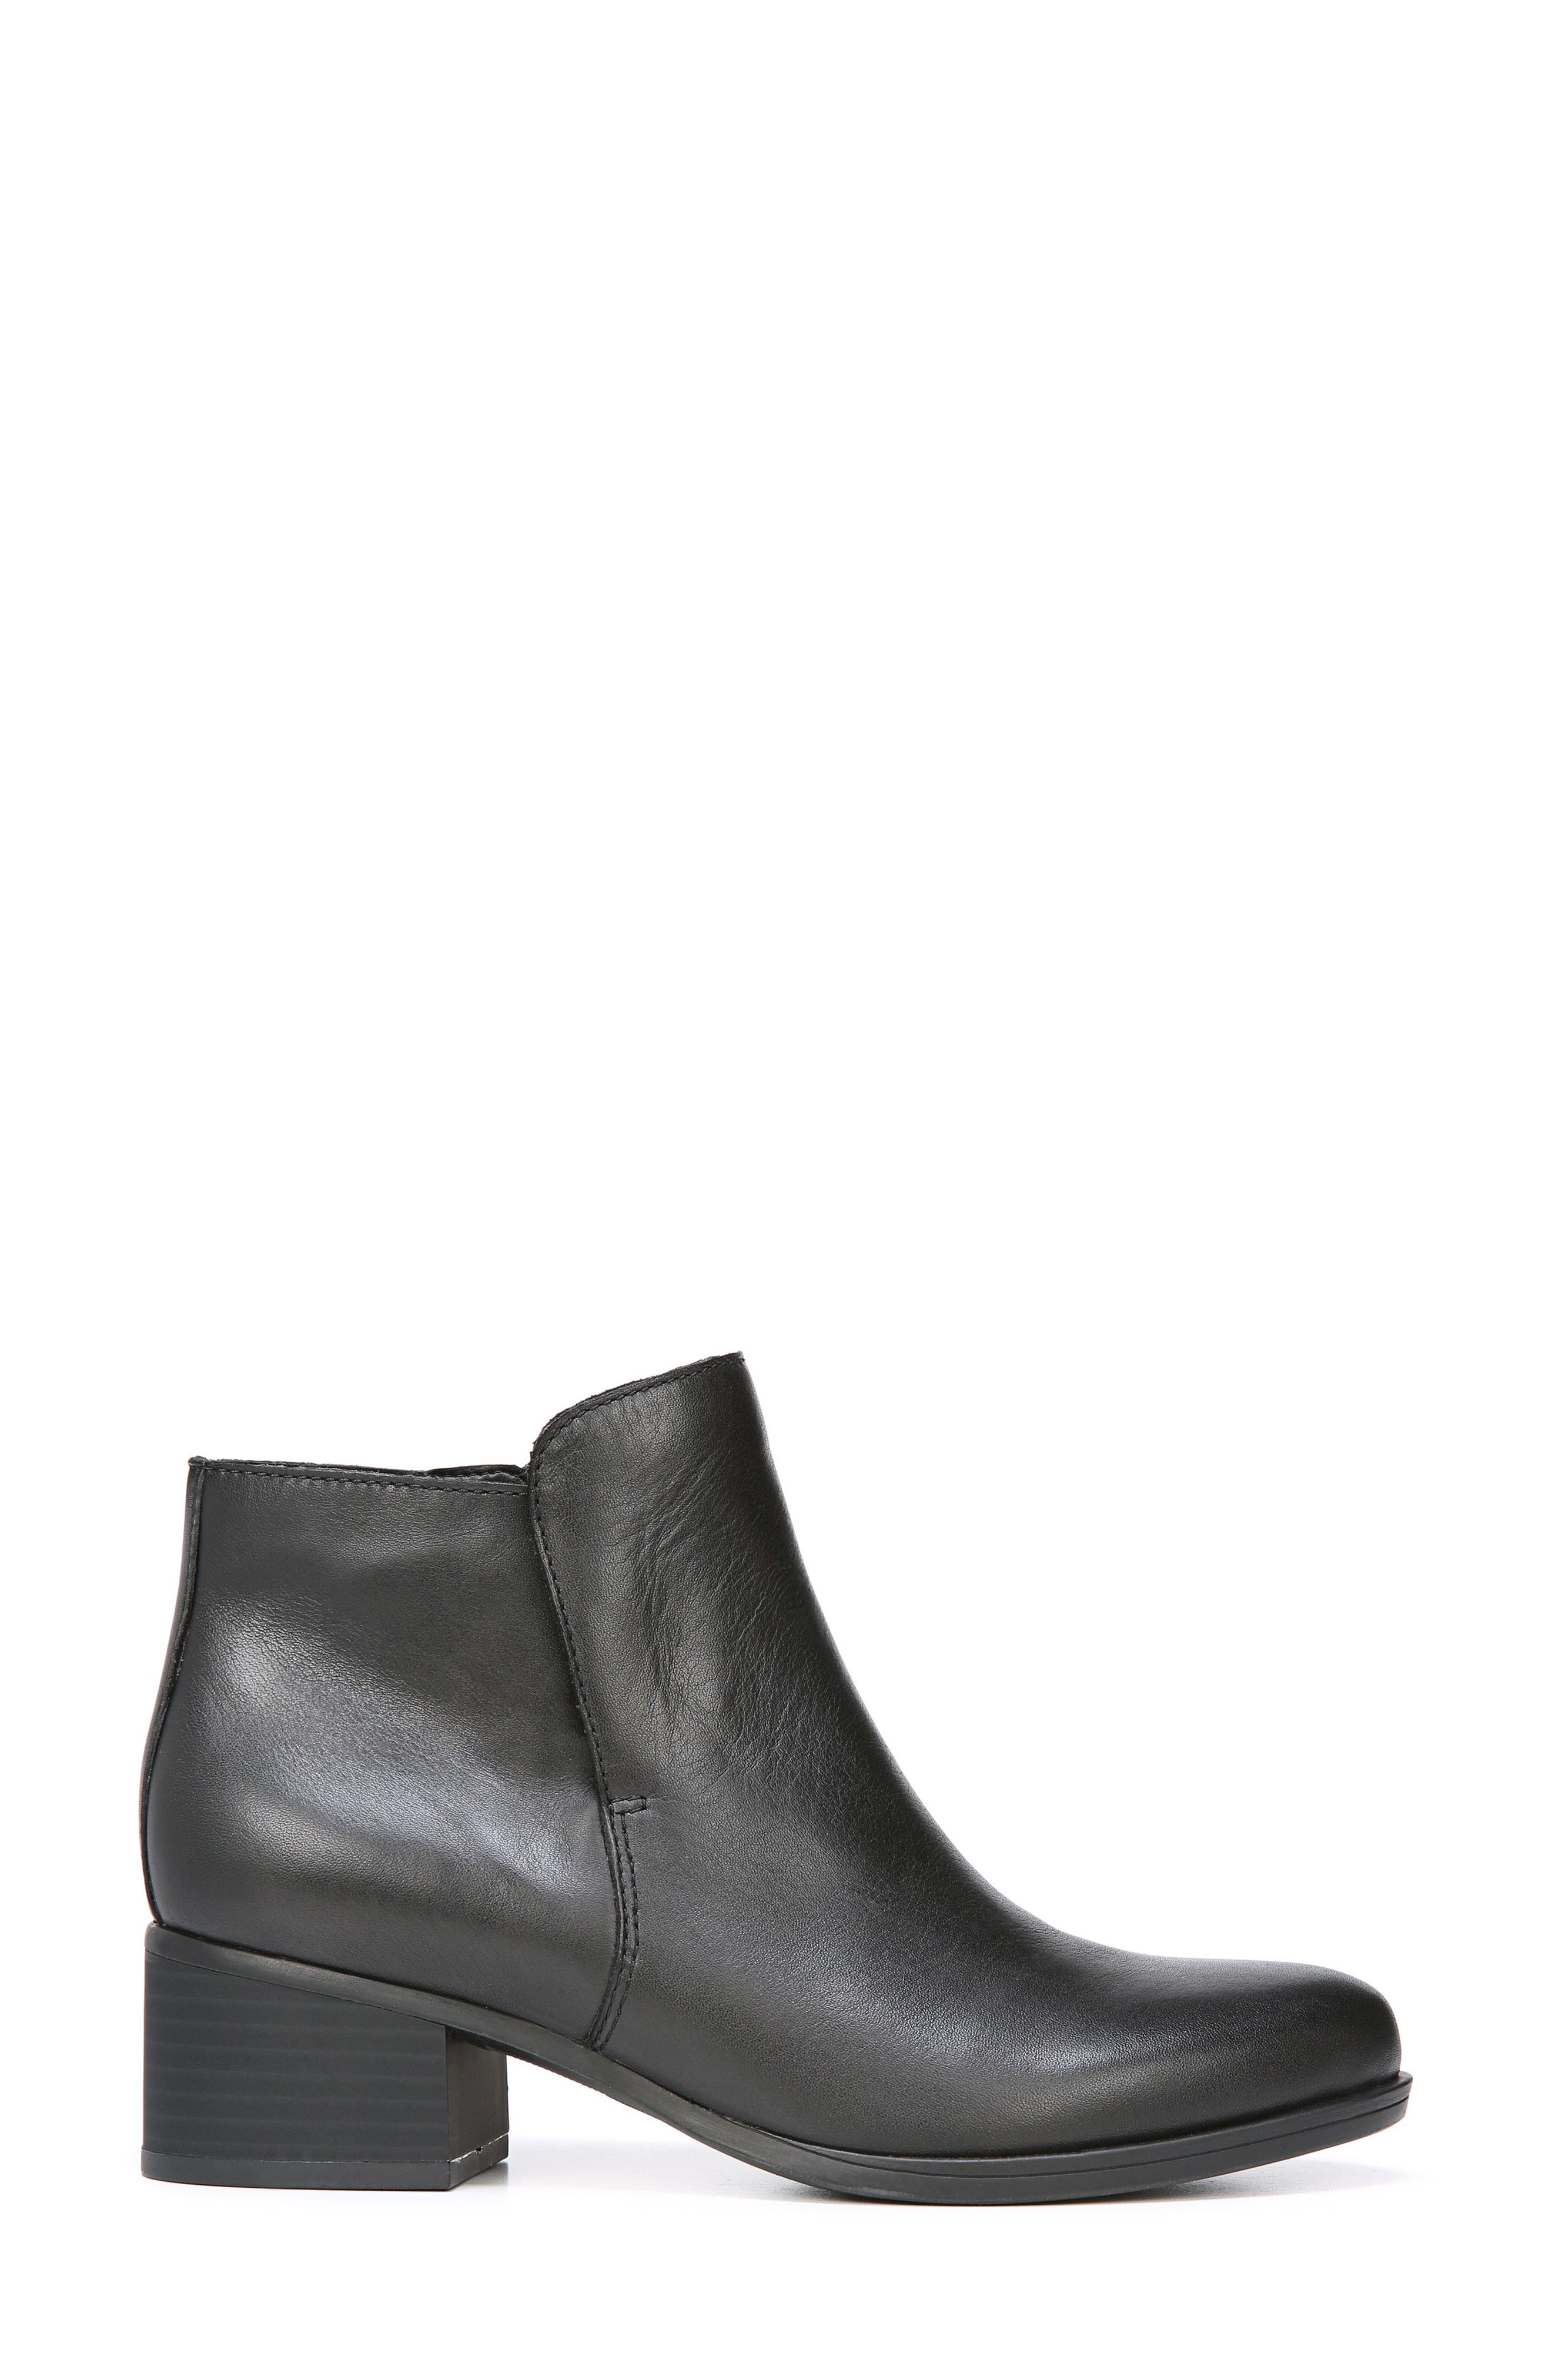 Dawson Waterproof Bootie,                             Alternate thumbnail 3, color,                             Black Leather